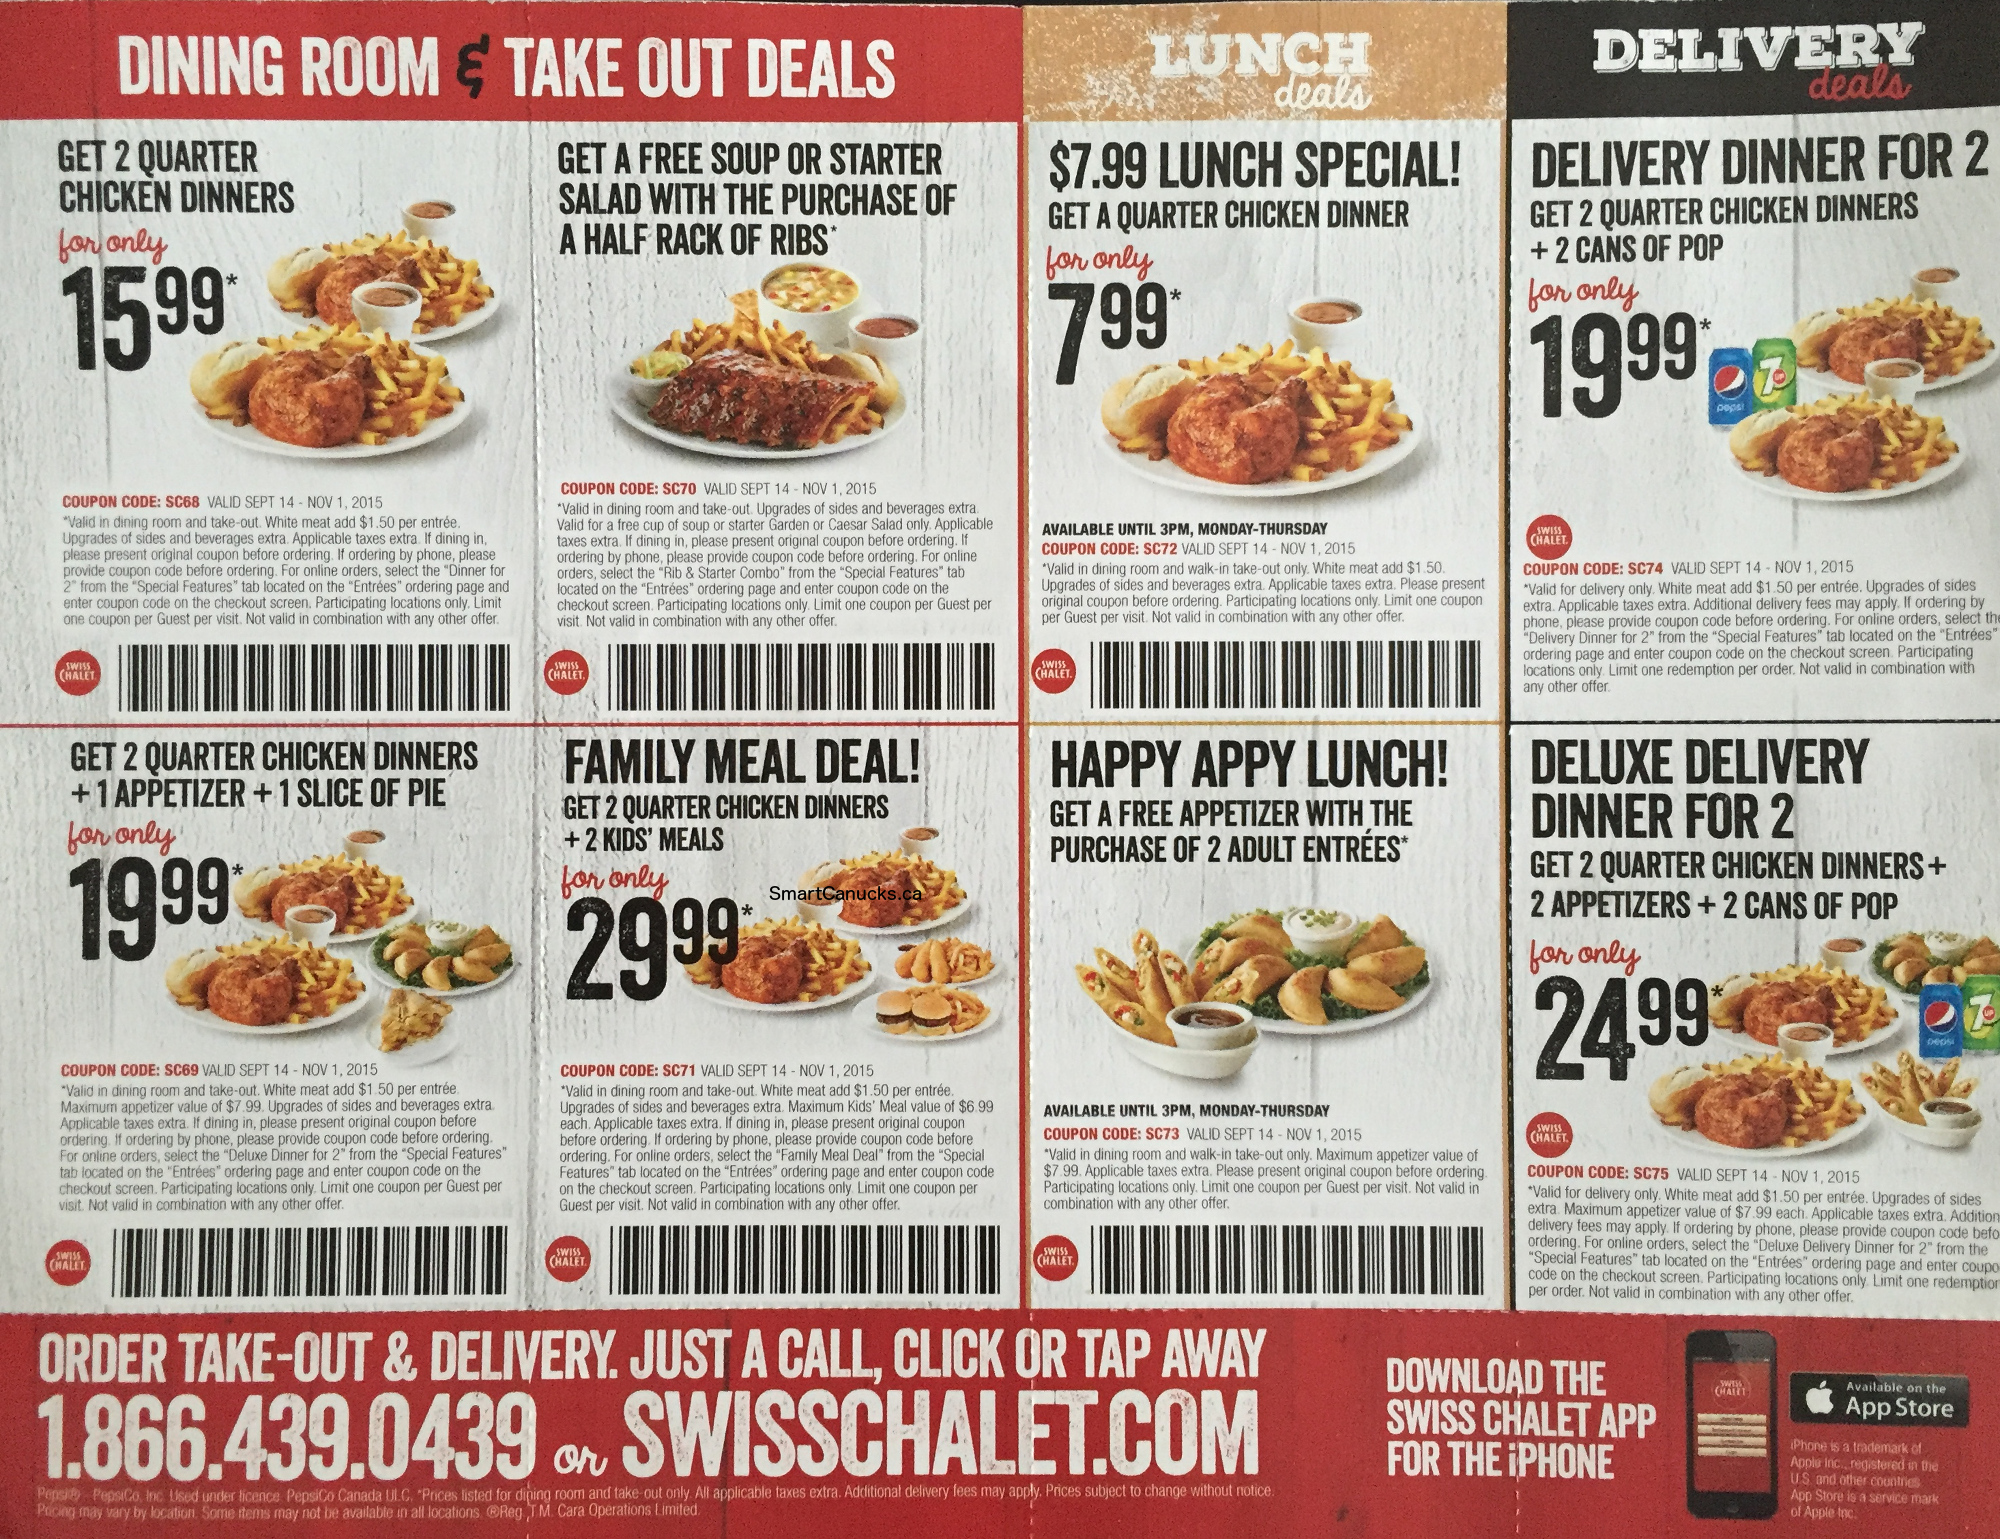 swiss chalet promo code offers get free soup or salad with purchase of 1 2 rack ribs get 2 quarter chicken dinners 1 appitizer 1 slice of pie for 19 99